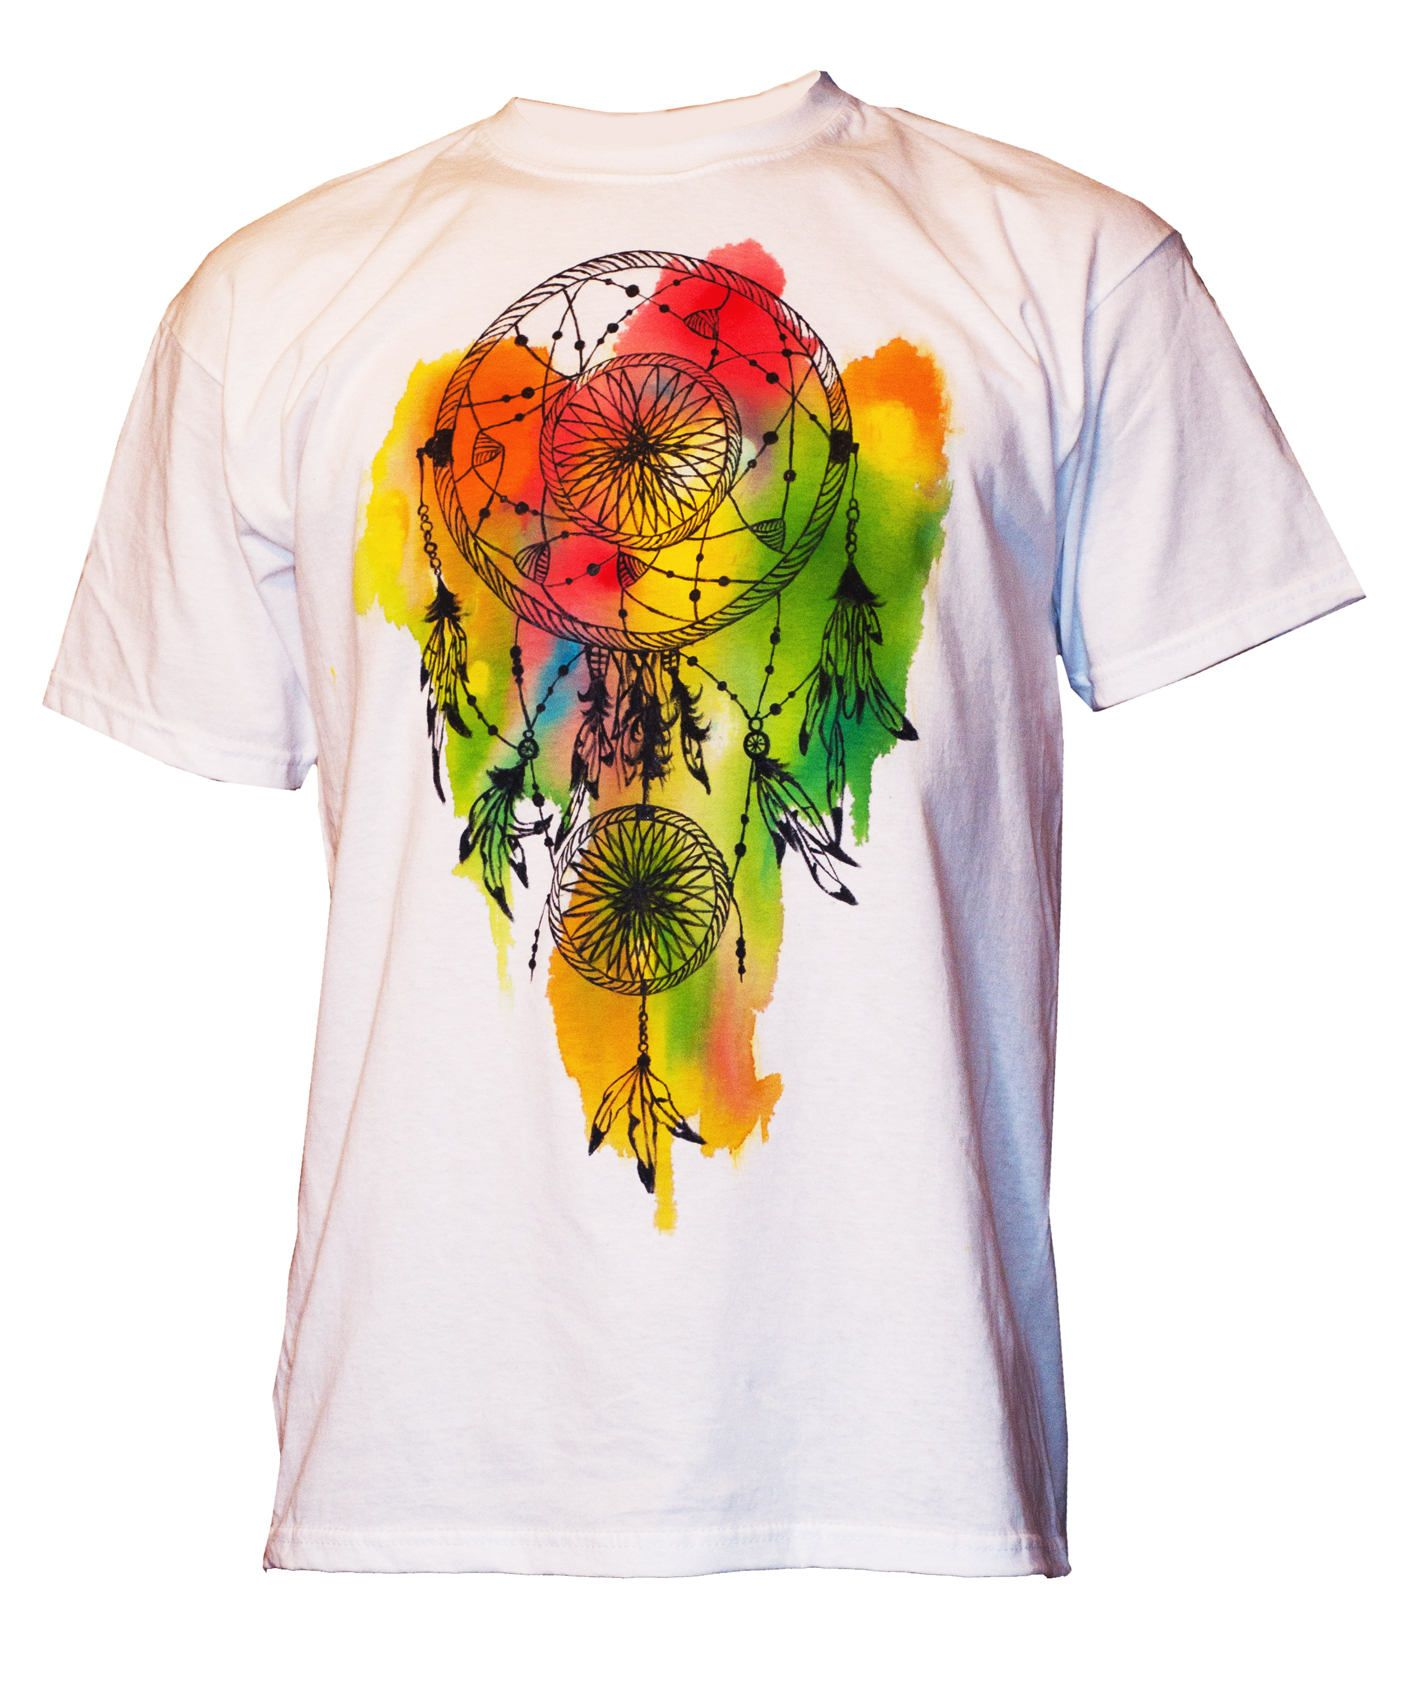 Dreamcatcher T Shirt Paint By Hand Shirt Watercolor Dreamcatcher